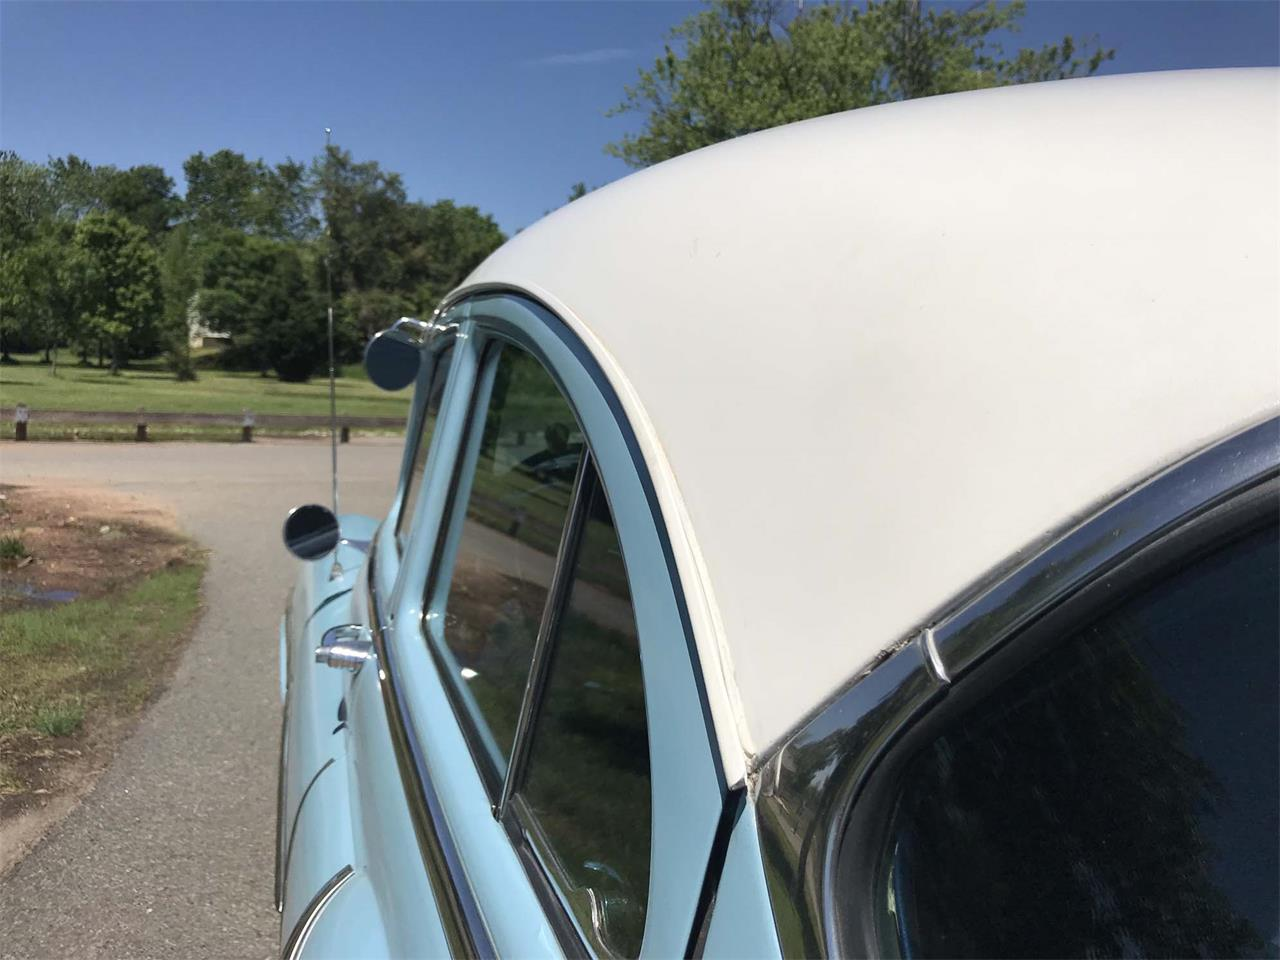 Large Picture of Classic '53 Oldsmobile 88 Deluxe located in Edison New Jersey - $11,900.00 Offered by a Private Seller - MRZN